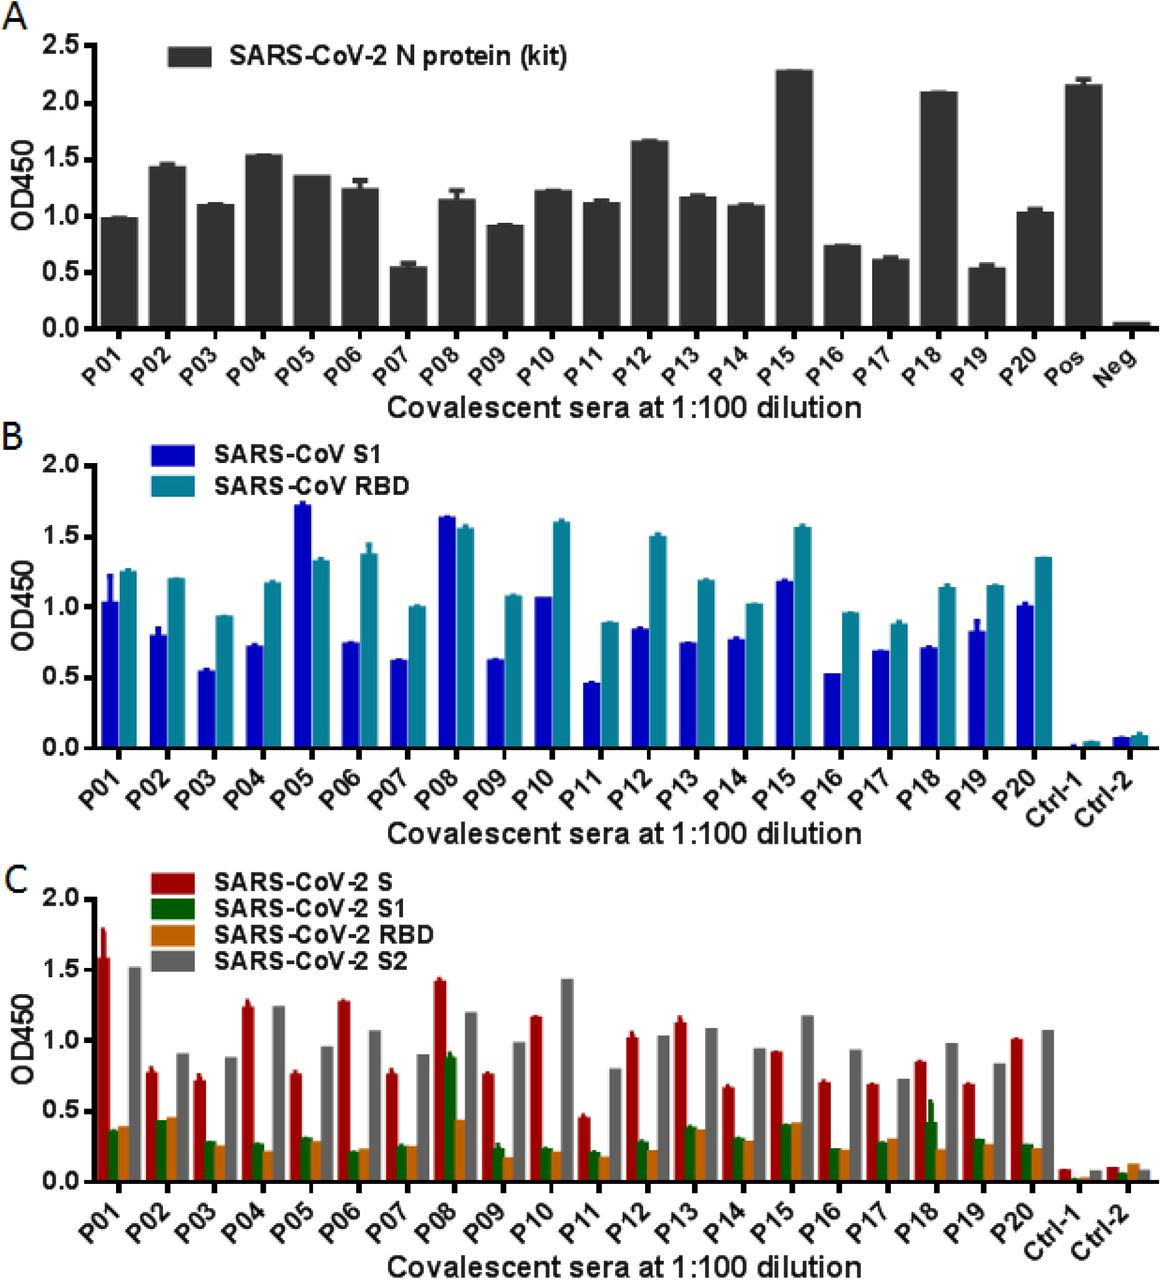 Cross-reactivity of convalescent sera from SARS-CoV infected patients with SARS-CoV-2 determined by ELISA. (A) Reactivity of sera from 20 recovered SARS-CoV patients (P01 to P20) with the nucleoprotein (N) of SARS-CoV-2 was measured by a commercial ELISA kit. (B) Reactivity of convalescent SARS sera with the recombinant S1 and RBD proteins of SARS-CoV. (C) Reactivity of convalescent SARS sera with the S ectodomain (designated S), S1, RBD, and S2 proteins of SARS-CoV-2. Serum samples from two healthy donors were used as negative control (Ctrl-1 and Ctrl-2). The experiments were performed with duplicate samples and repeated three times, and data are shown as means with standard deviations.